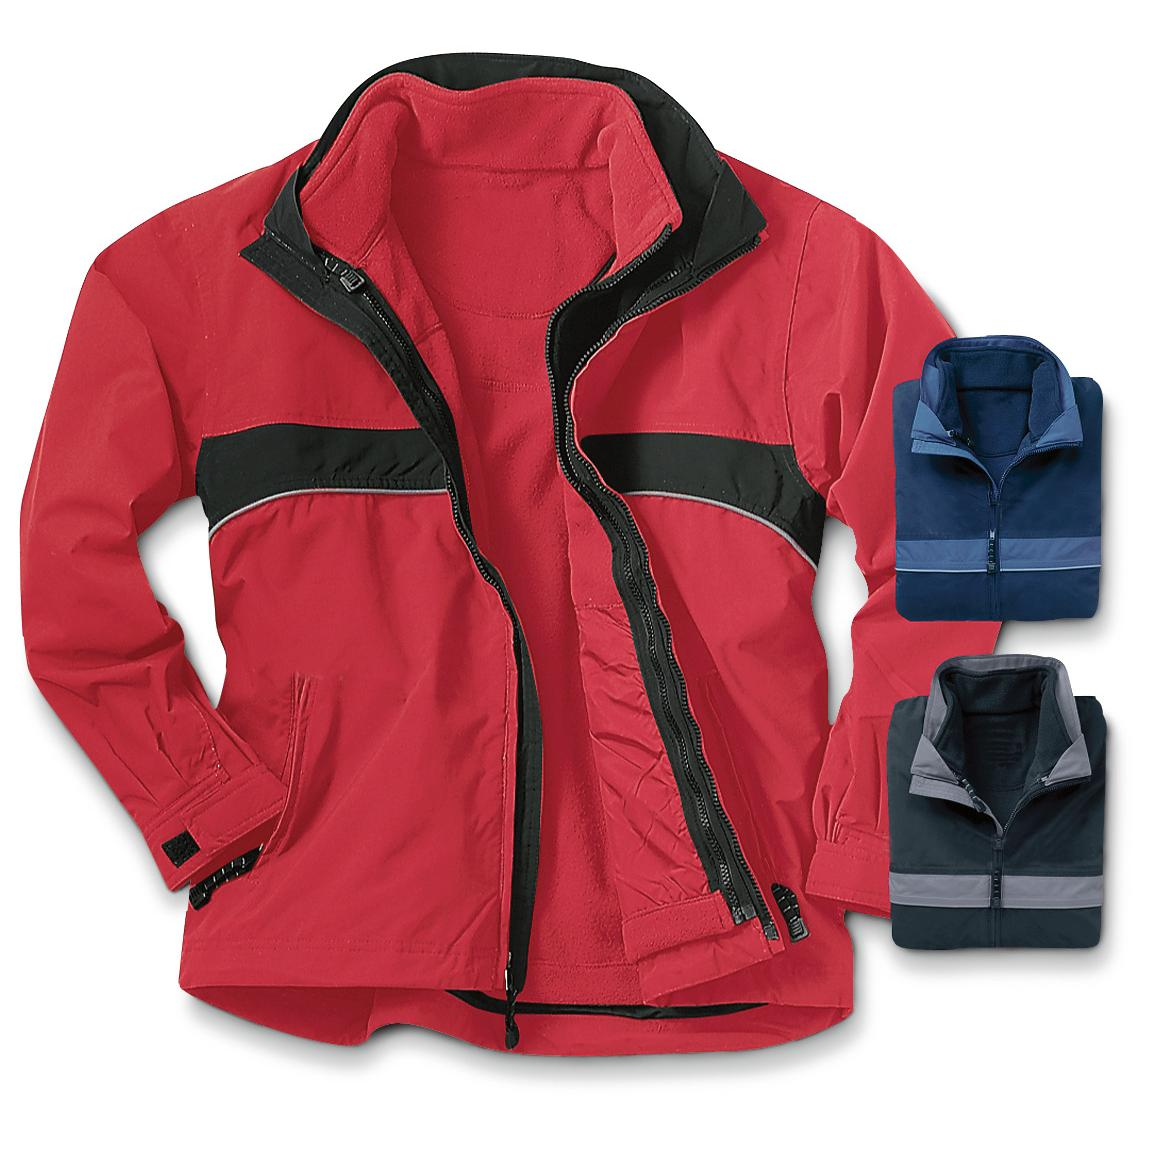 Men's River's End 3 - in - 1 Jacket with Zip - out Mirofleece Liner